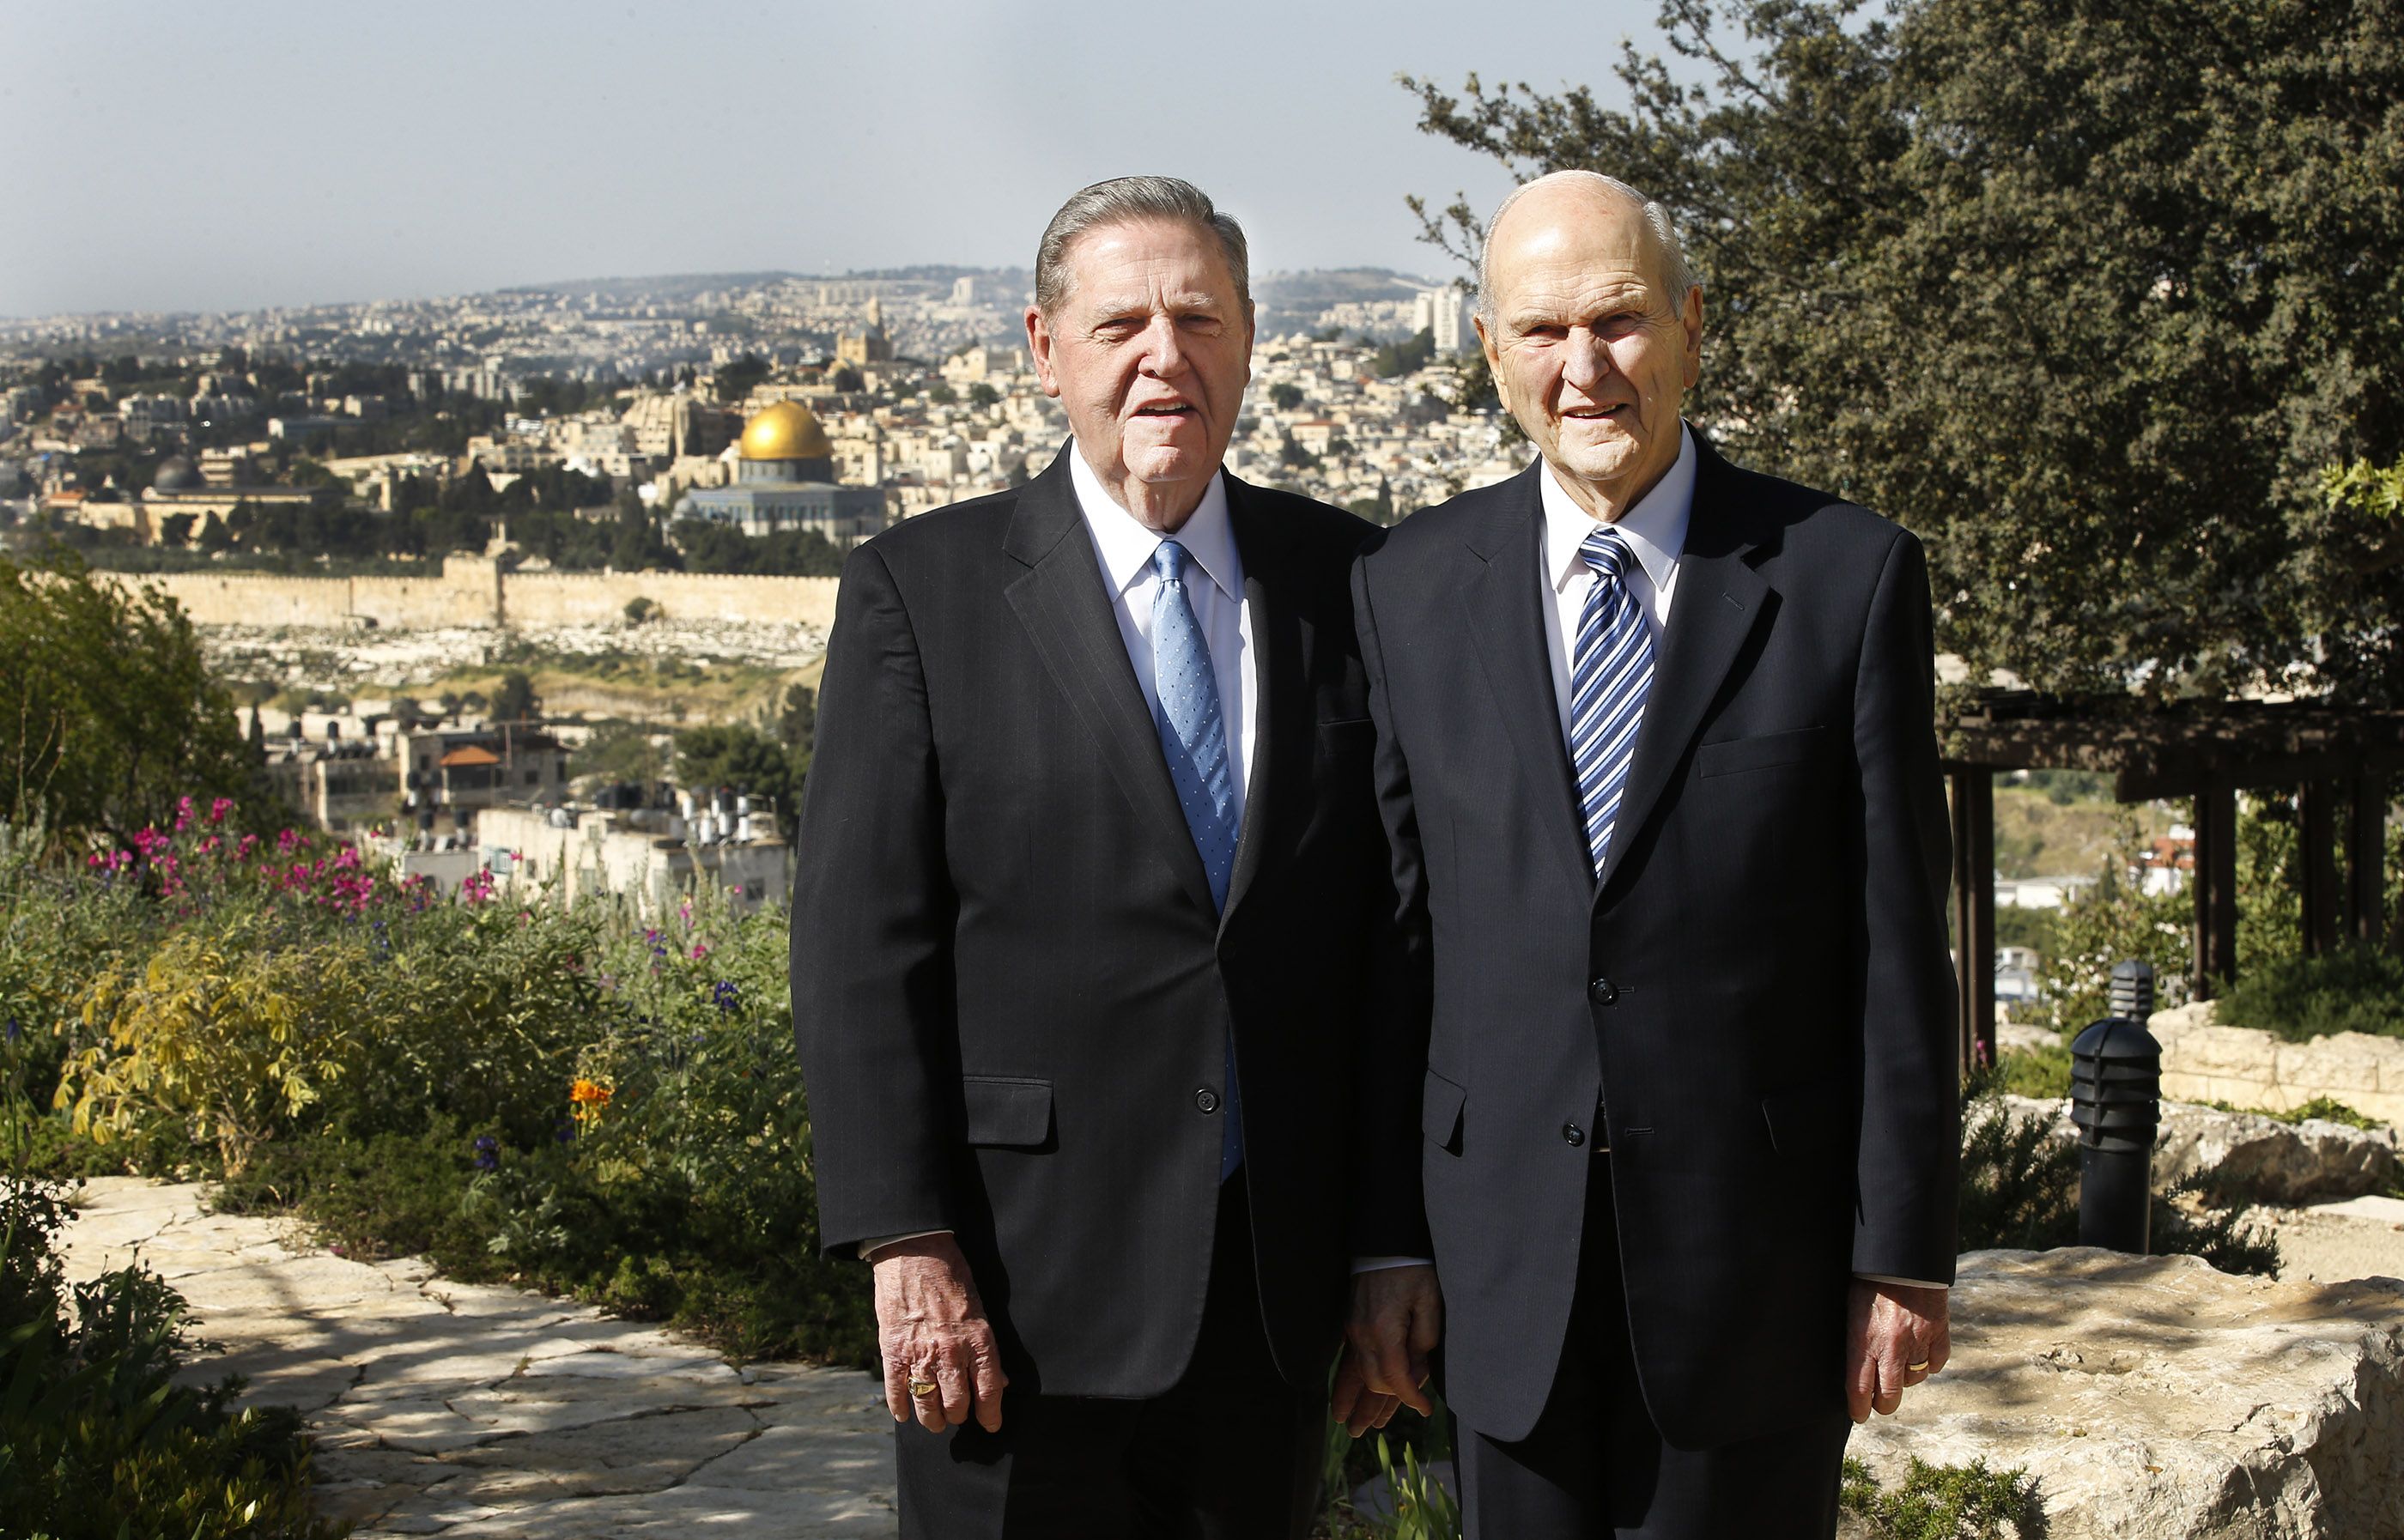 President Russell M. Nelson, president of The Church of Jesus Christ of Latter-day Saints, right, and Elder Jeffrey R. Holland, of the Quorum of the Twelve Apostles, stand together at the BYU Jerusalem Center in Jerusalem on Saturday, April 14, 2018. They are on a global tour of eight countries.